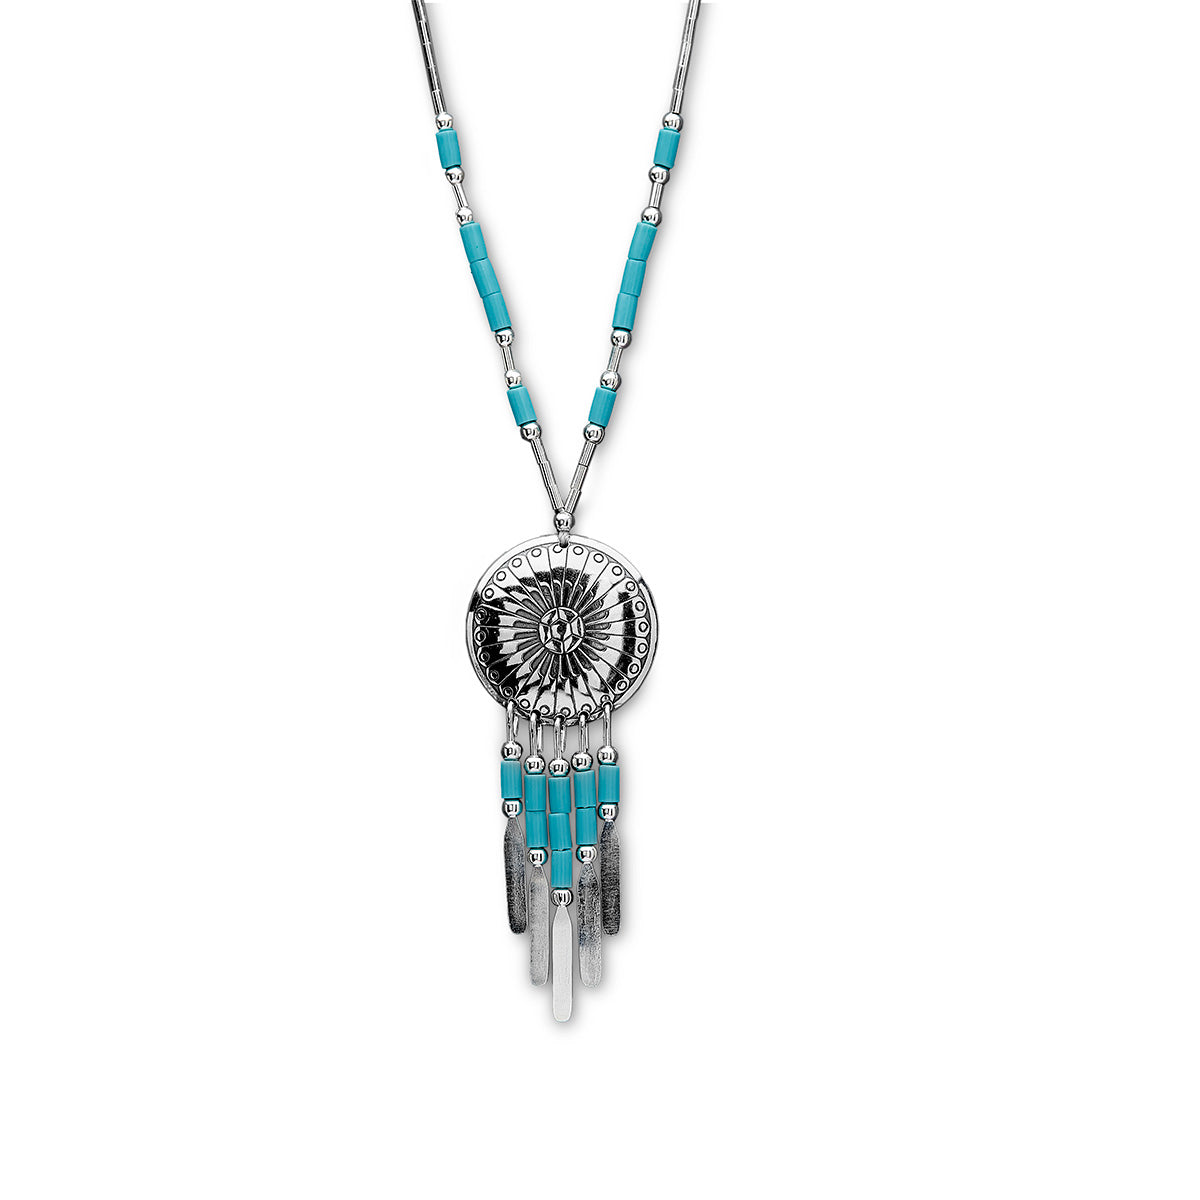 Native American 'Concho' style Turquoise and Silver Beaded Necklace